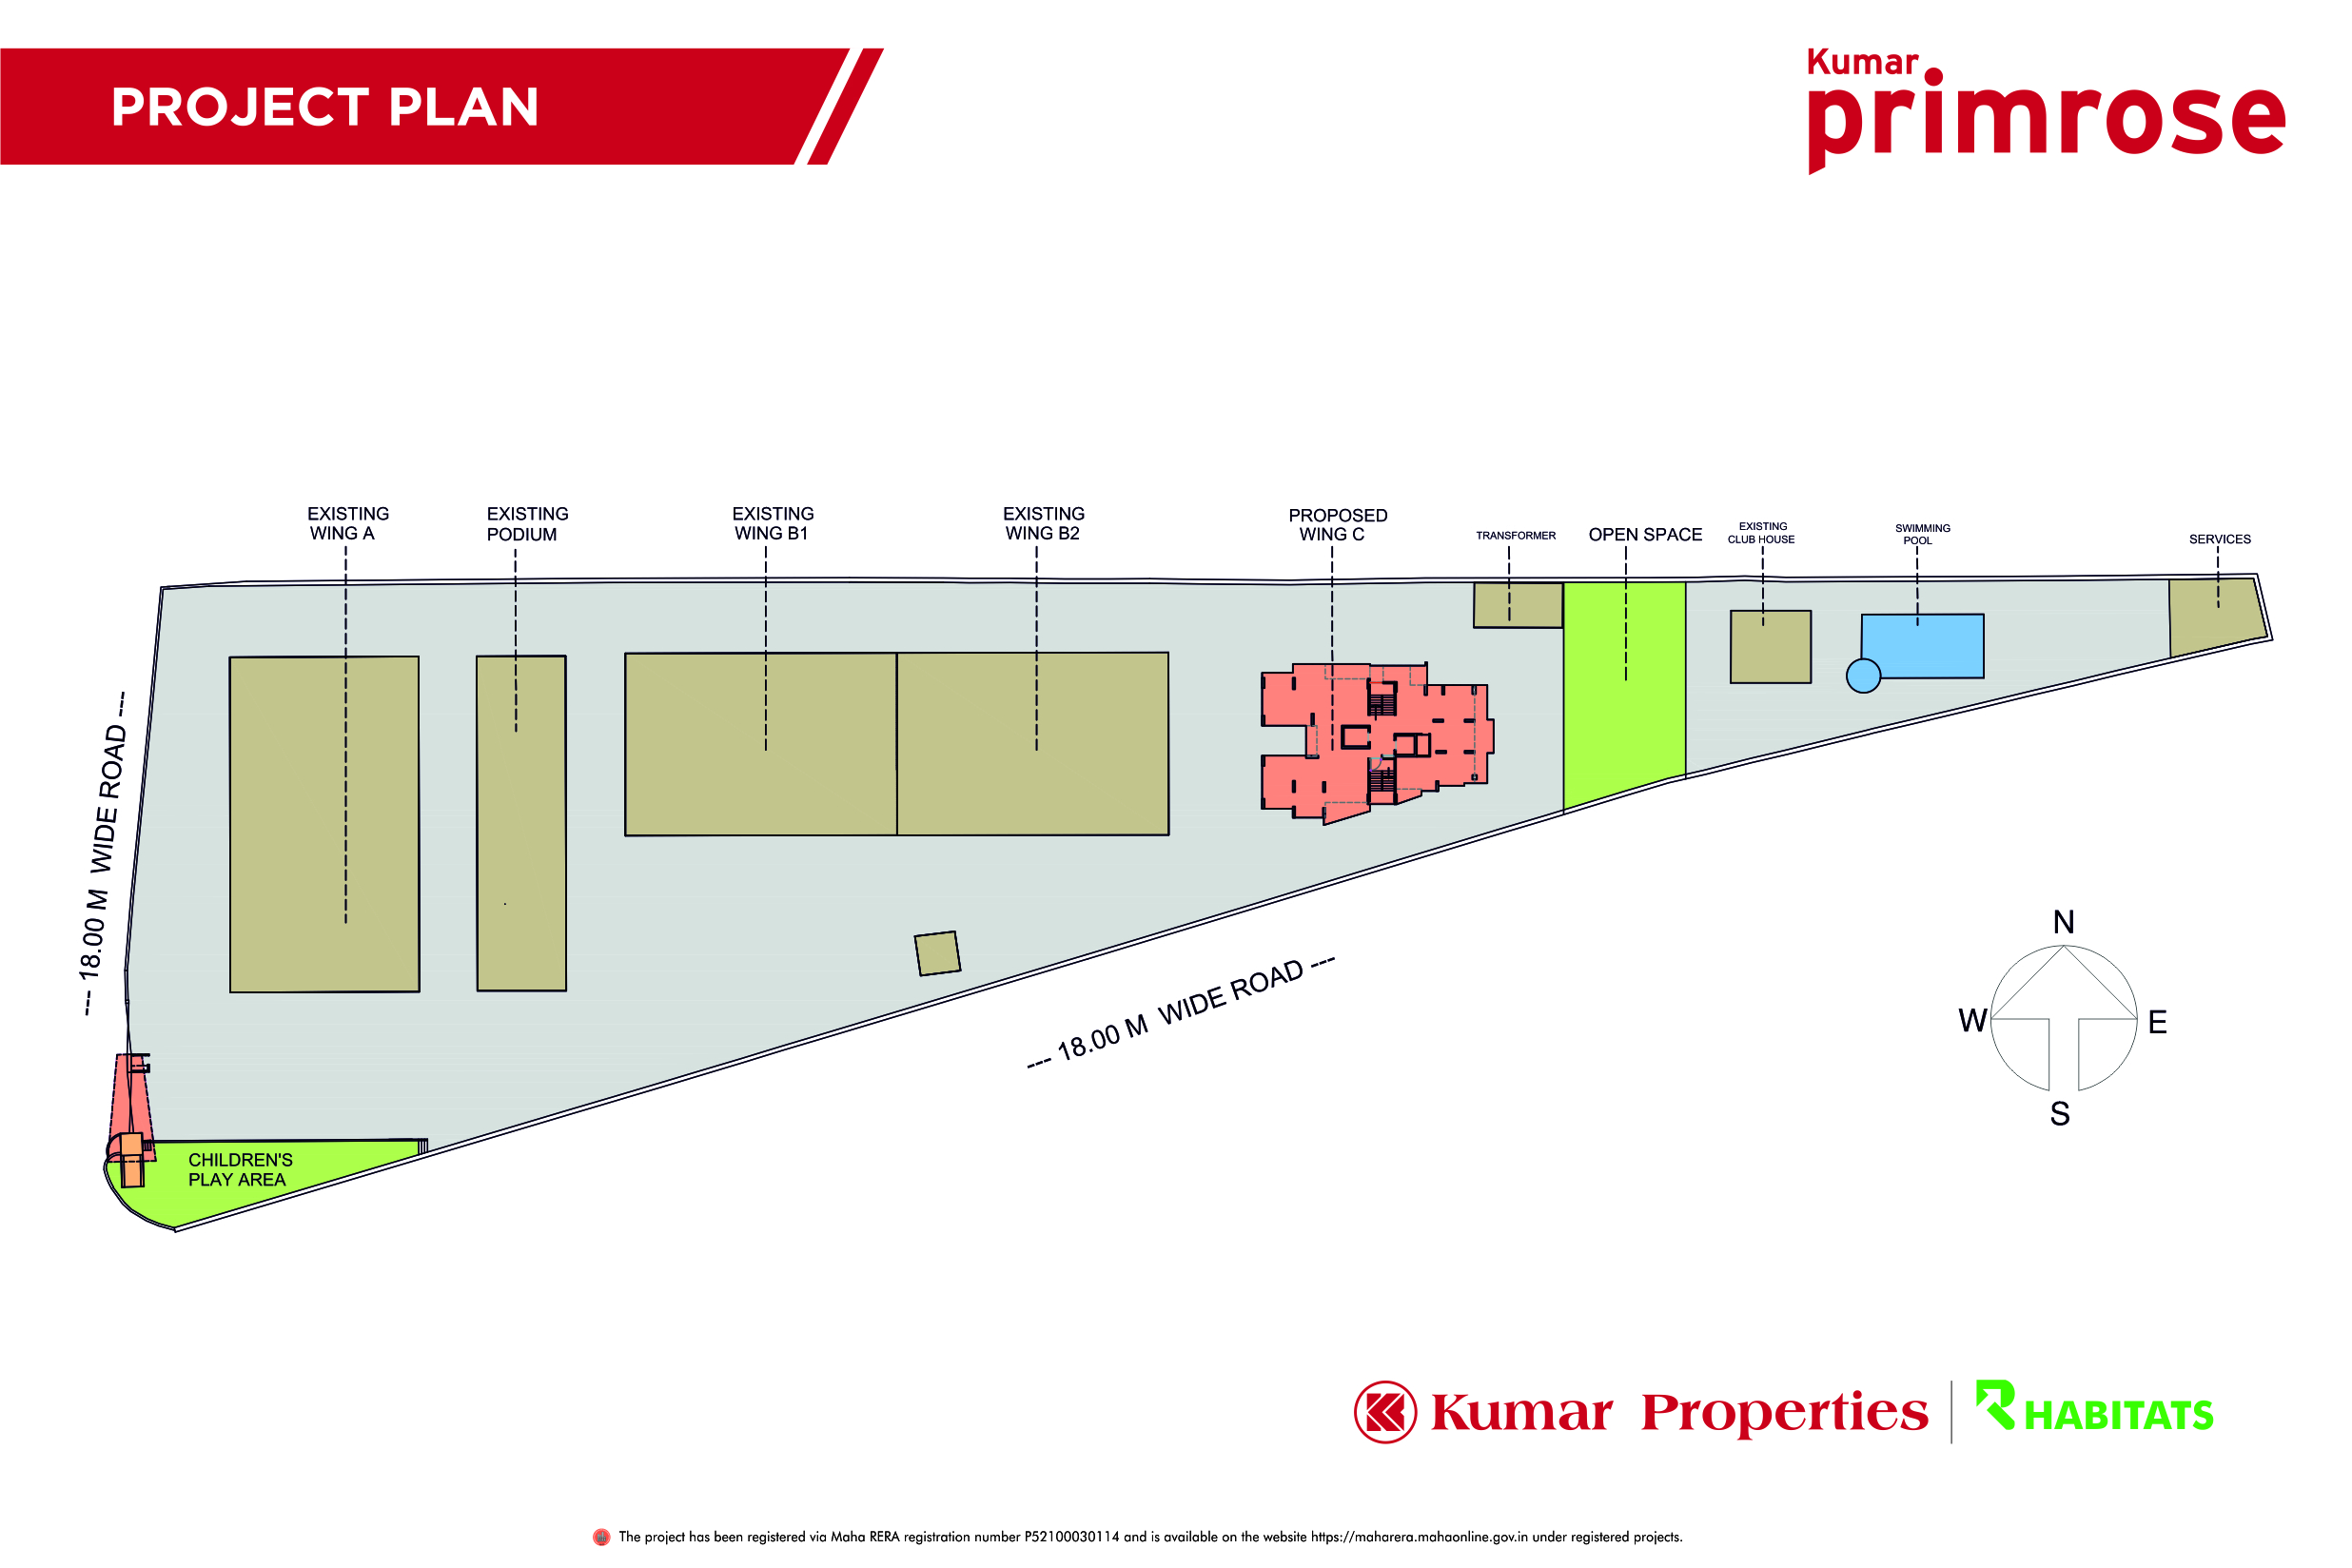 Revised primrose project plan with rera no. 02-09-2021